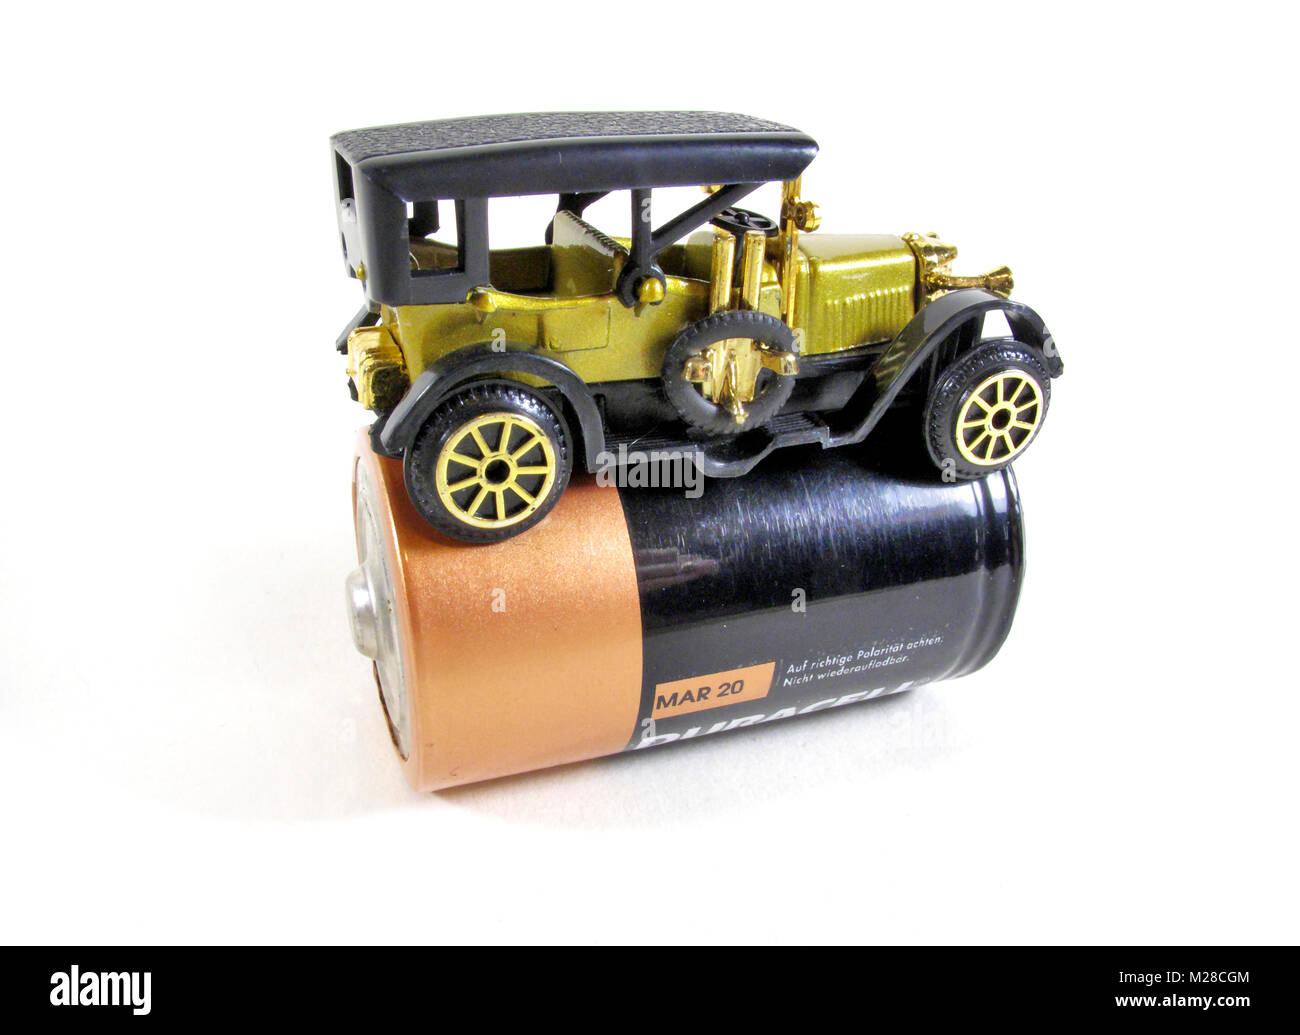 Car Salvage also Your Cars Serpentine Belt besides Abandoned America Photographer Captures Haunting Images Rusting Steel Works Crumbling Schools Factories Great Superpower besides 7746206 also Old Car Batteries. on car recycling tucson